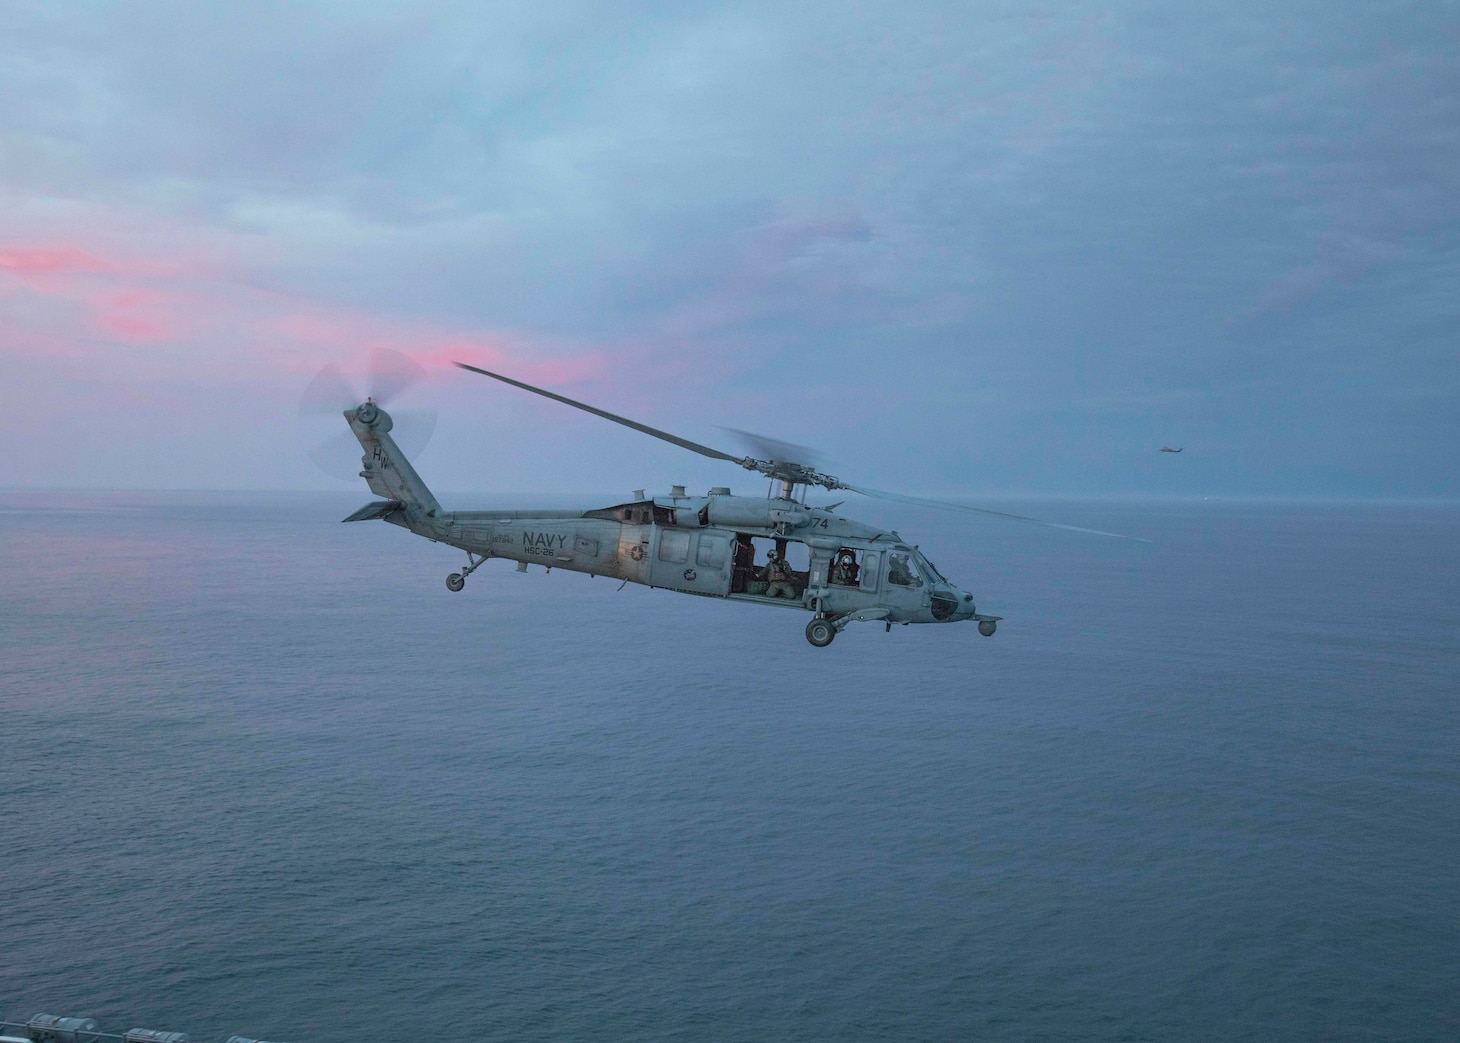 An MH-60S Sea Hawk, assigned to the Chargers, of Helicopter Sea Combat Squadron (HSC) 26, prepares to land on the flight deck aboard the amphibious assault ship USS Bataan (LHD 5).